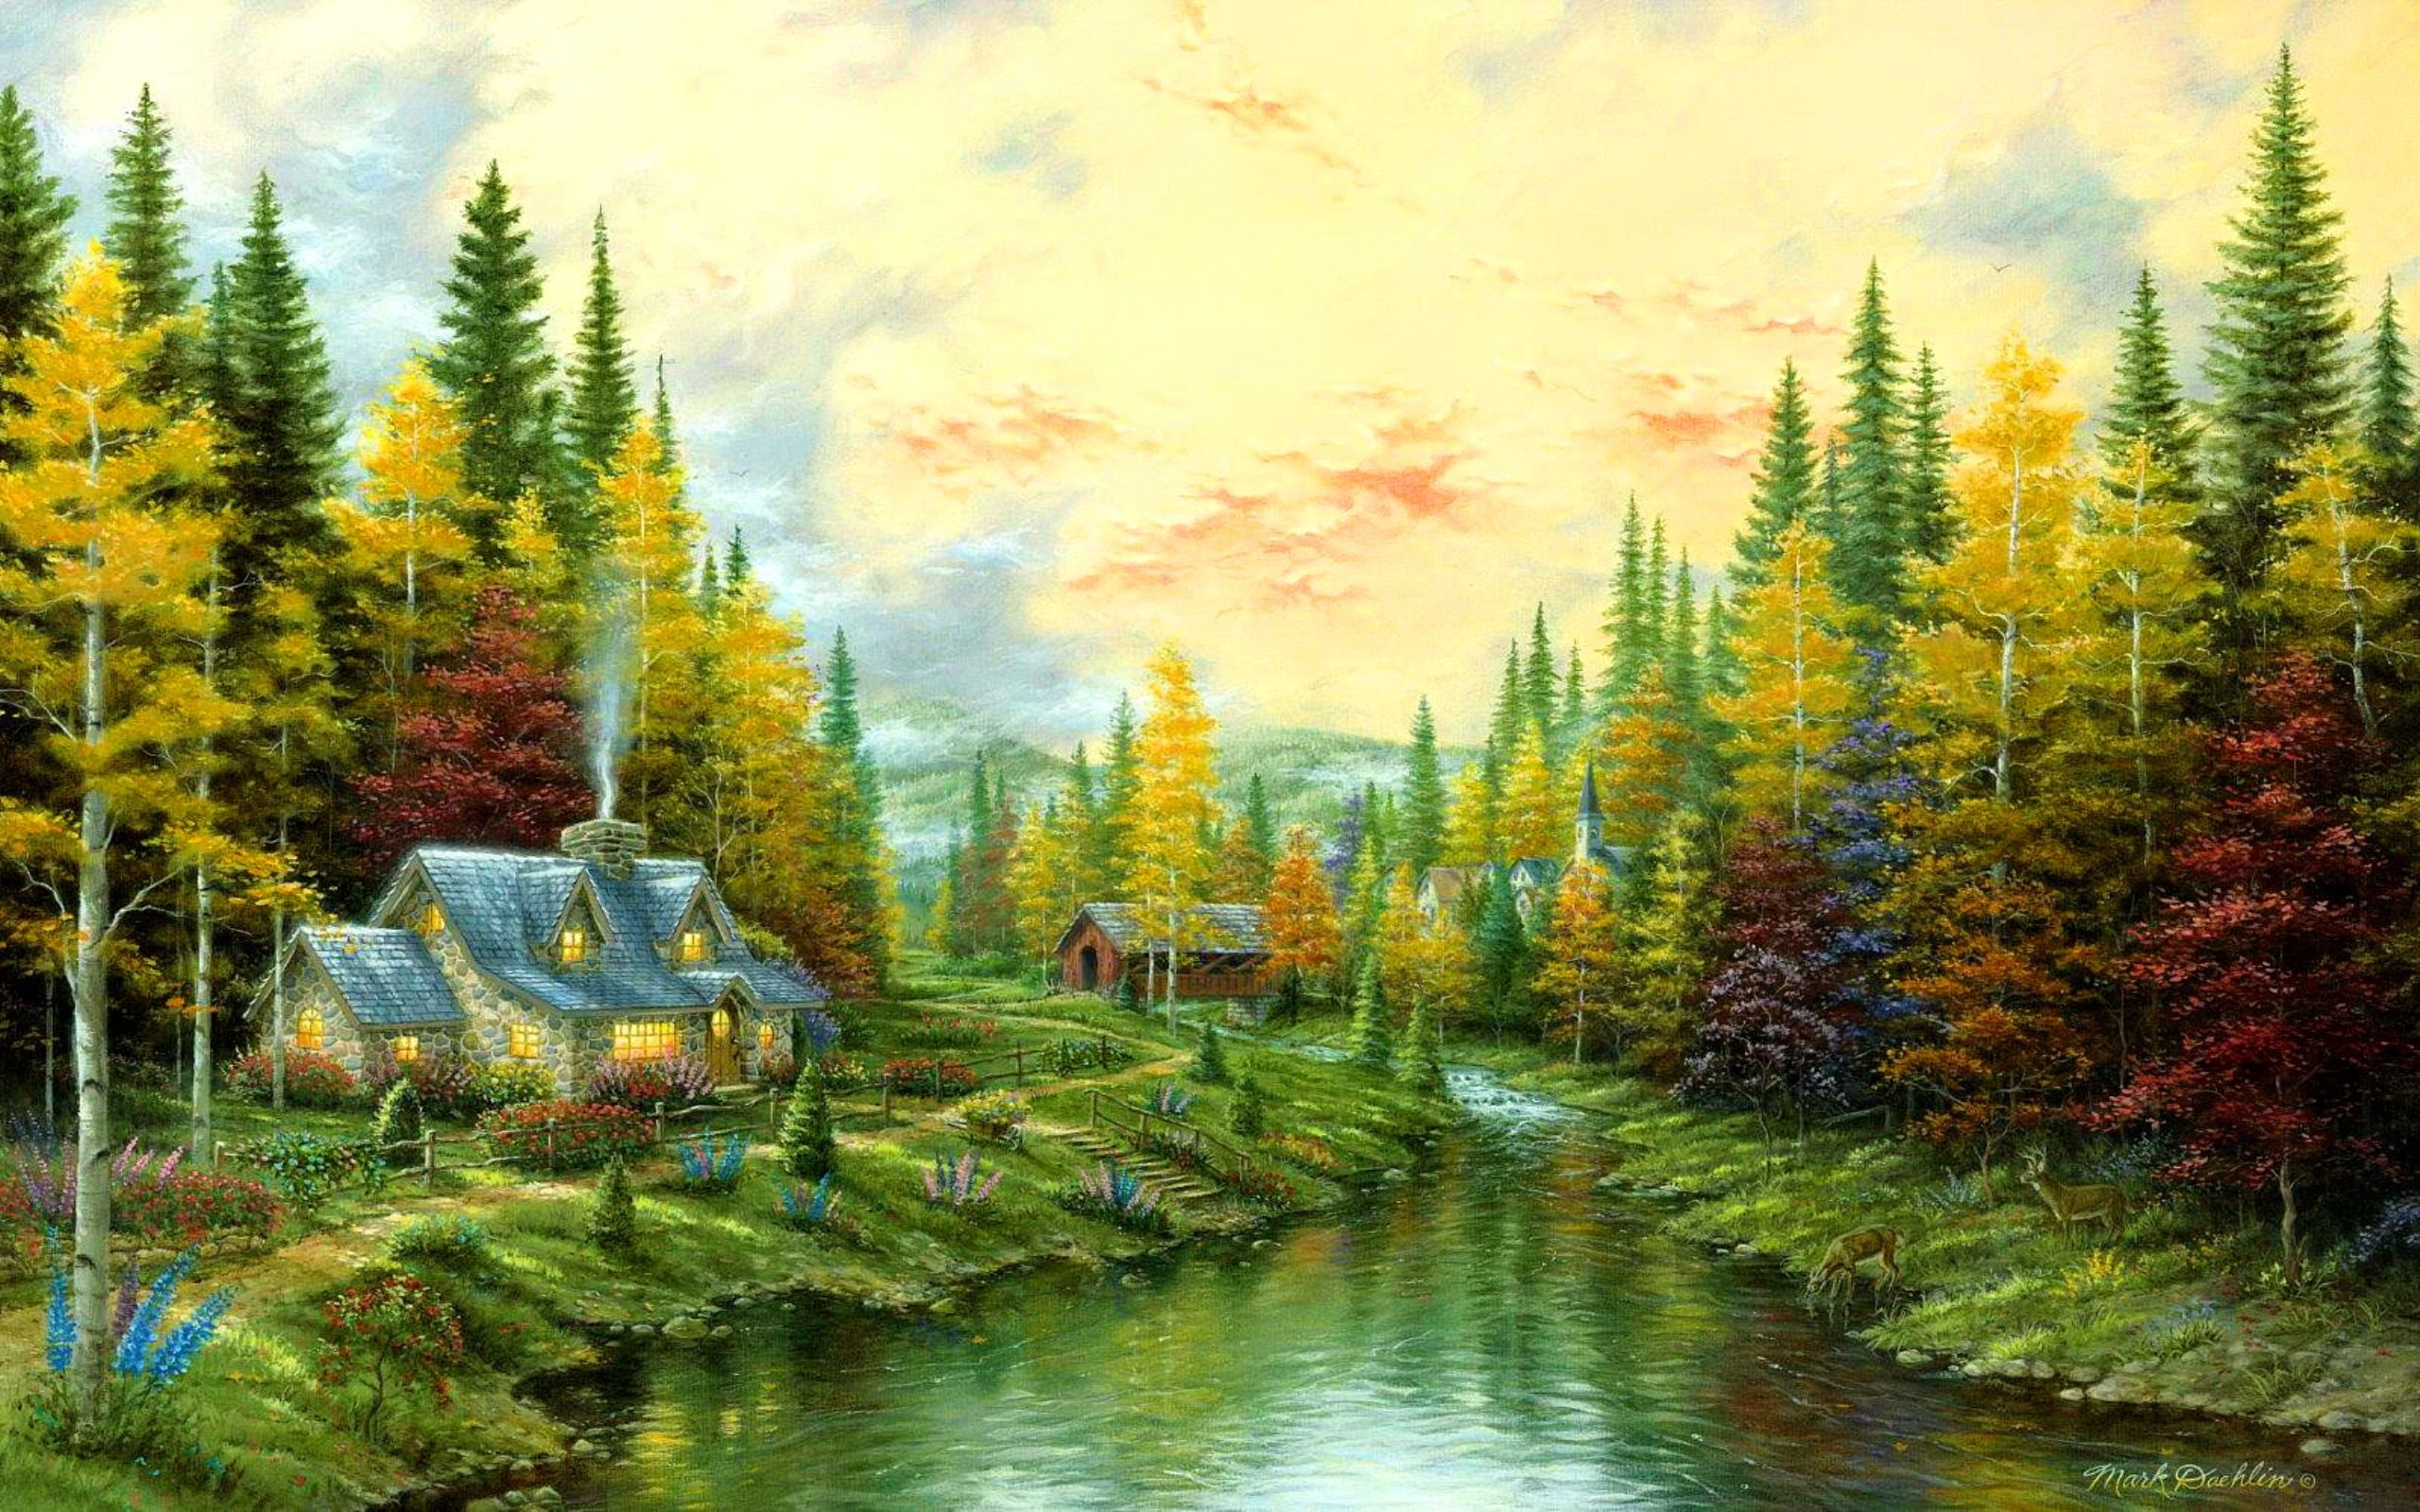 Indian Summer Wallpapers - Top Free Indian Summer